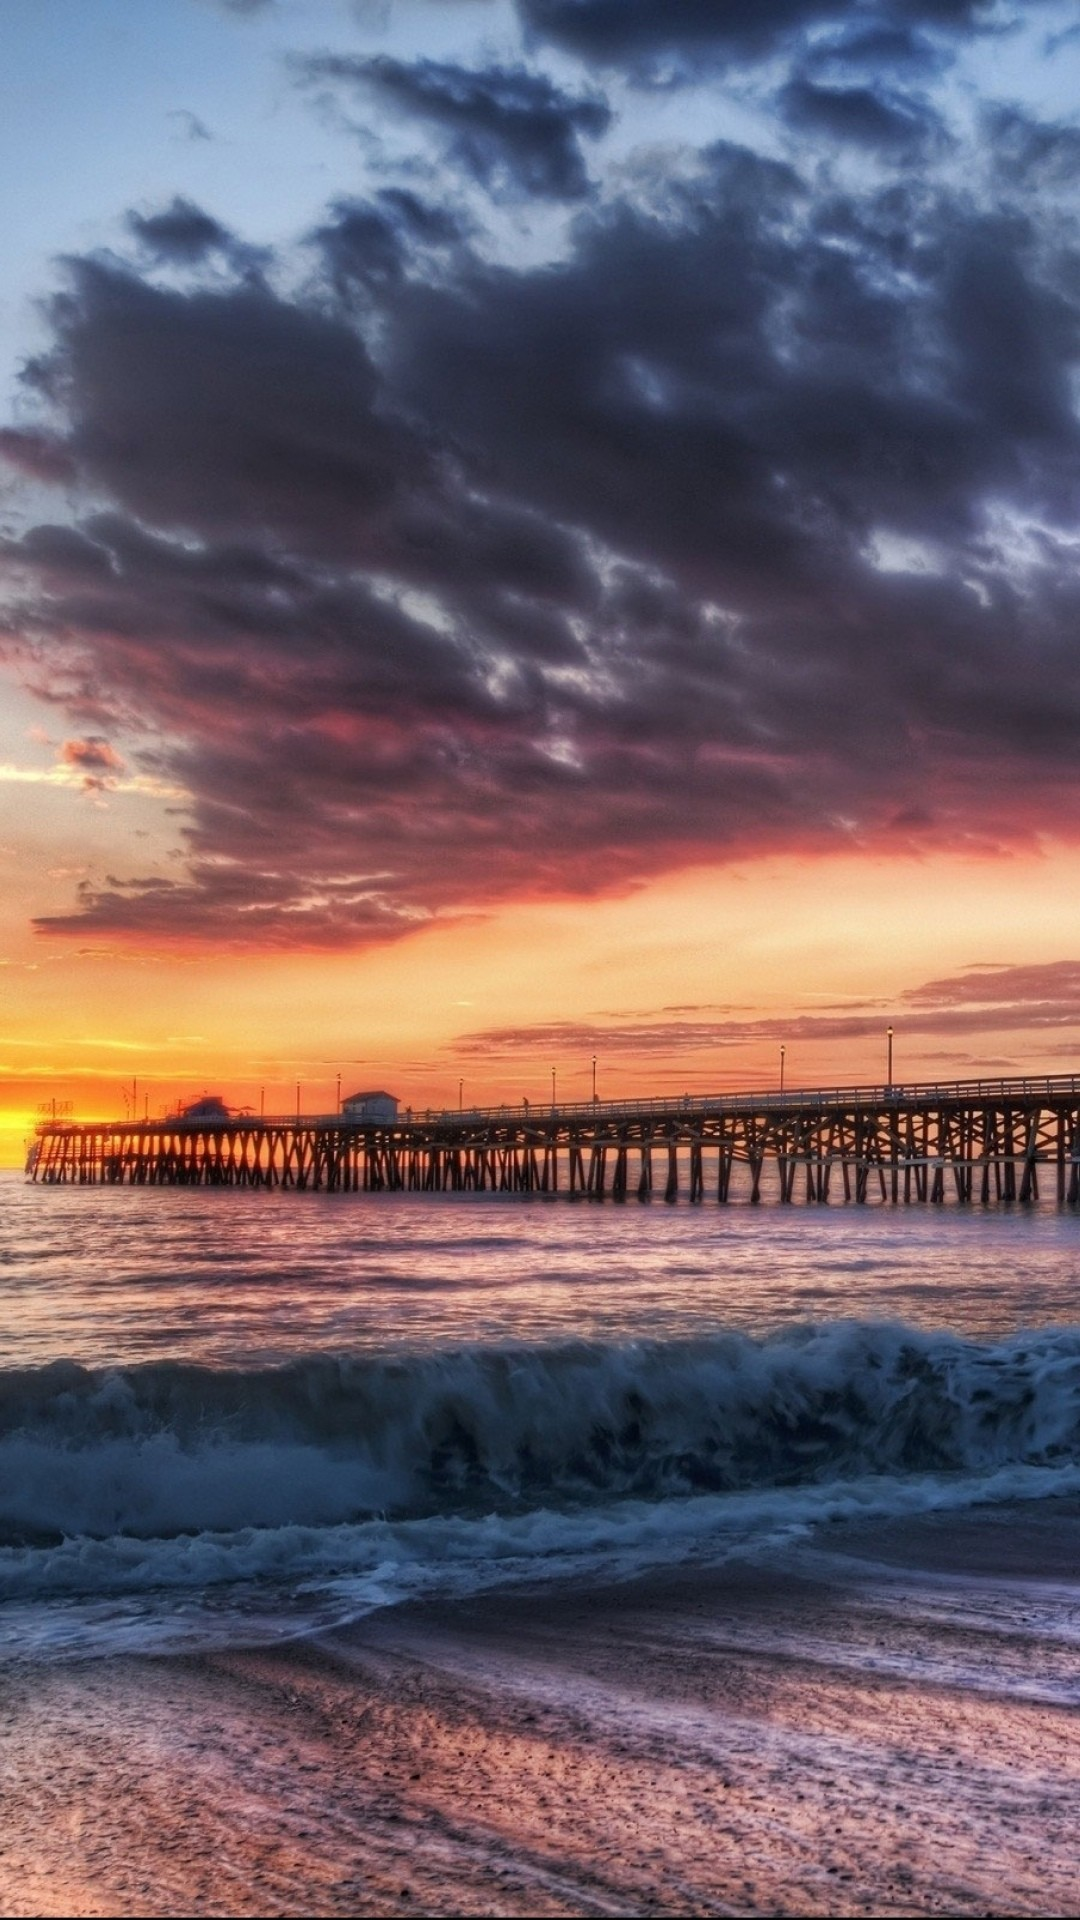 1080x1920 California Beach Dock Sunset iPhone 6 Wallpaper Download | iPhone .